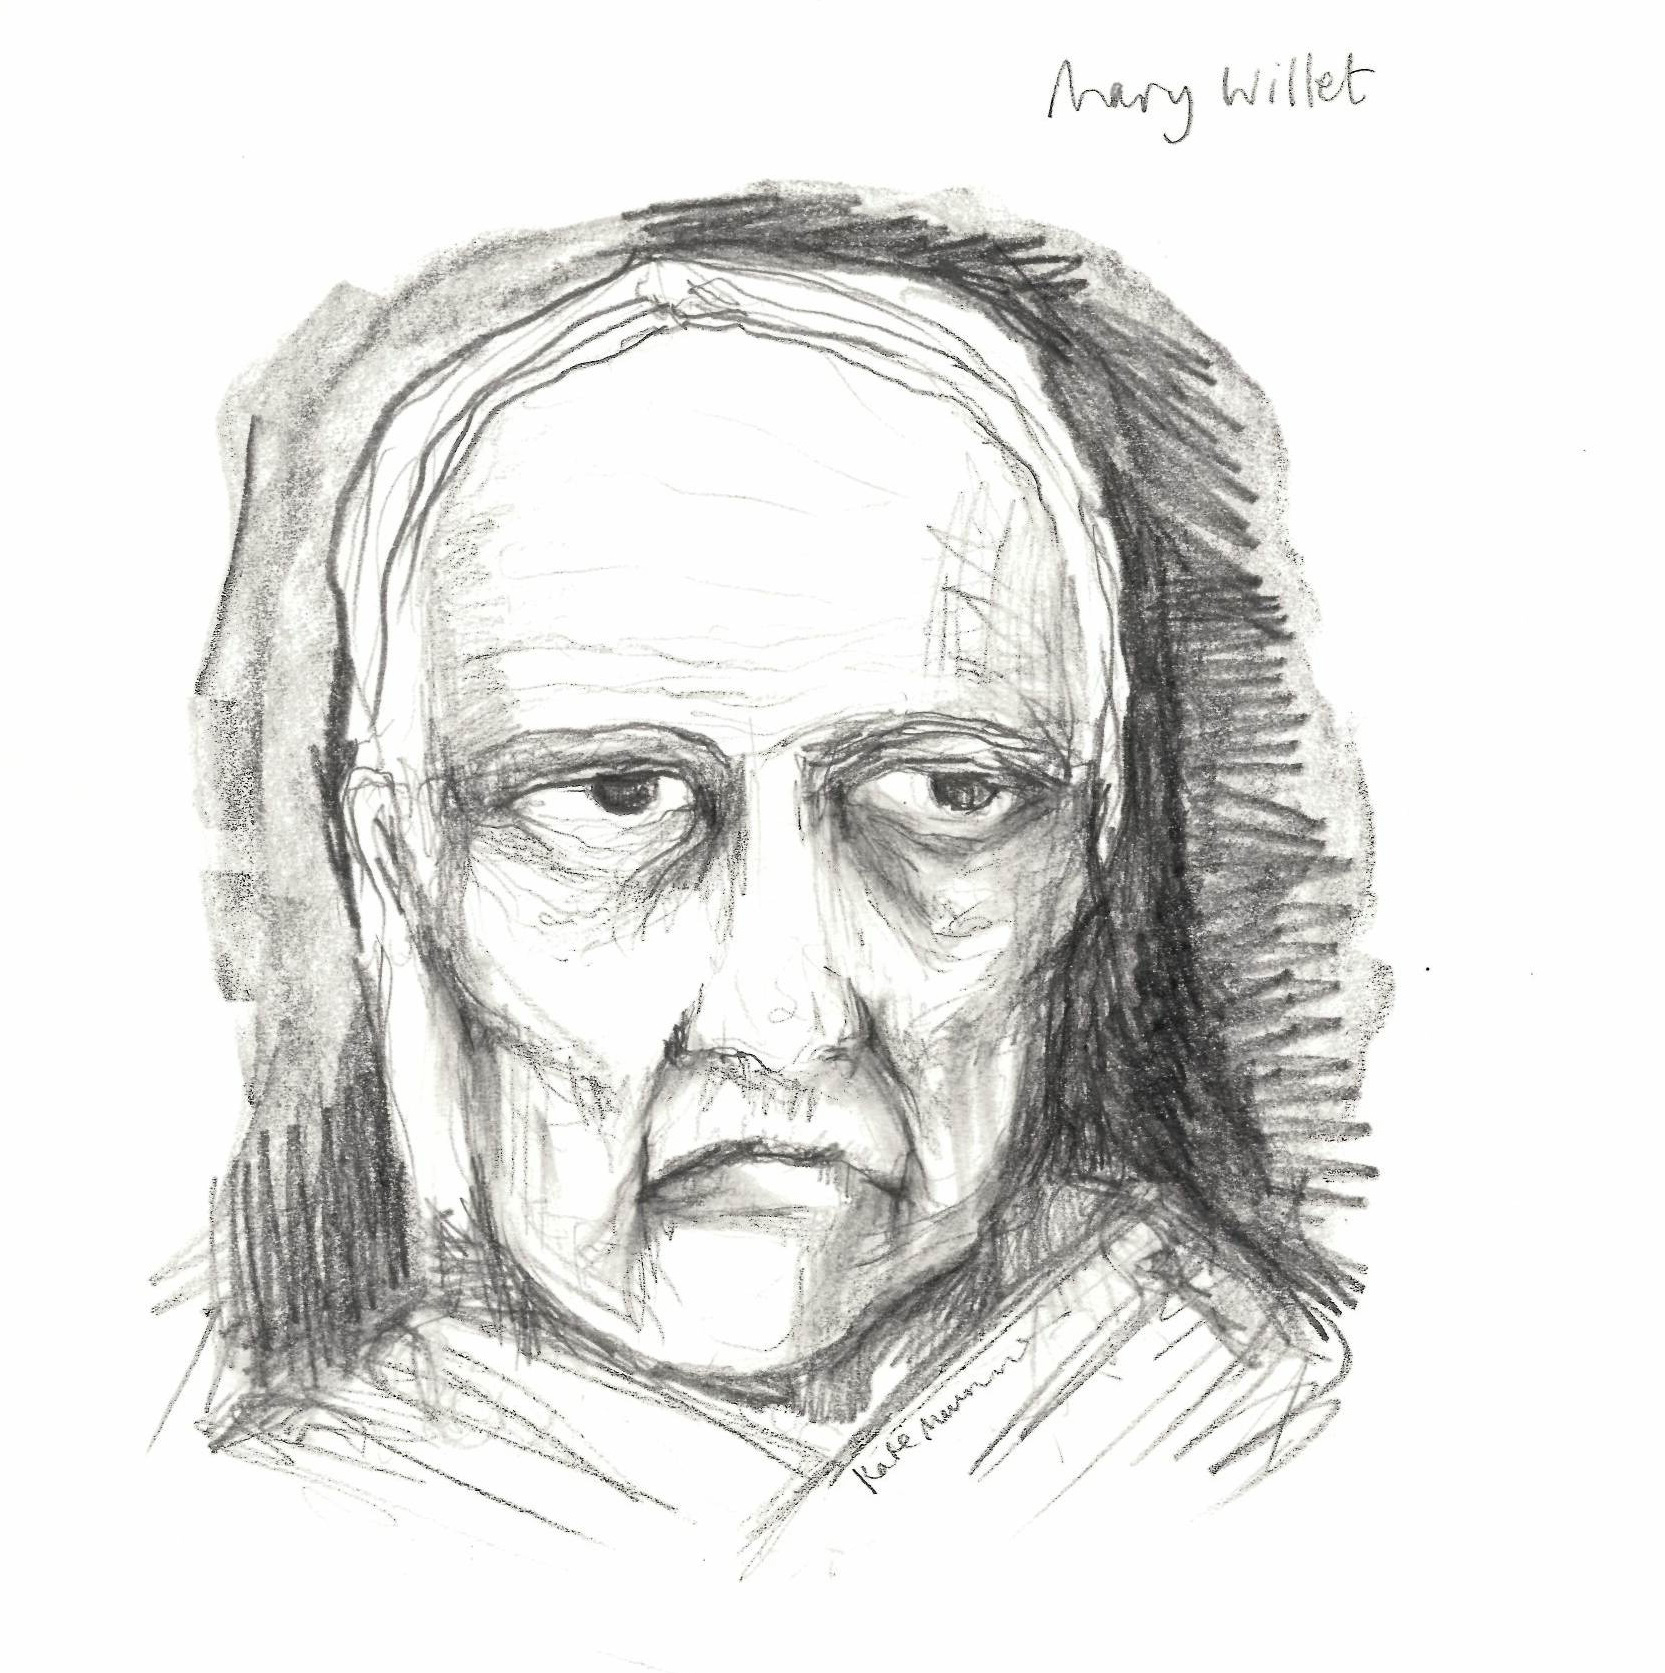 An artist's impression of what  Mary Willet might have looked like. Illustration by Kate Munro. Source: Wellcome Collection. © Wellcome Collection/ Katie Munro .  CC BY